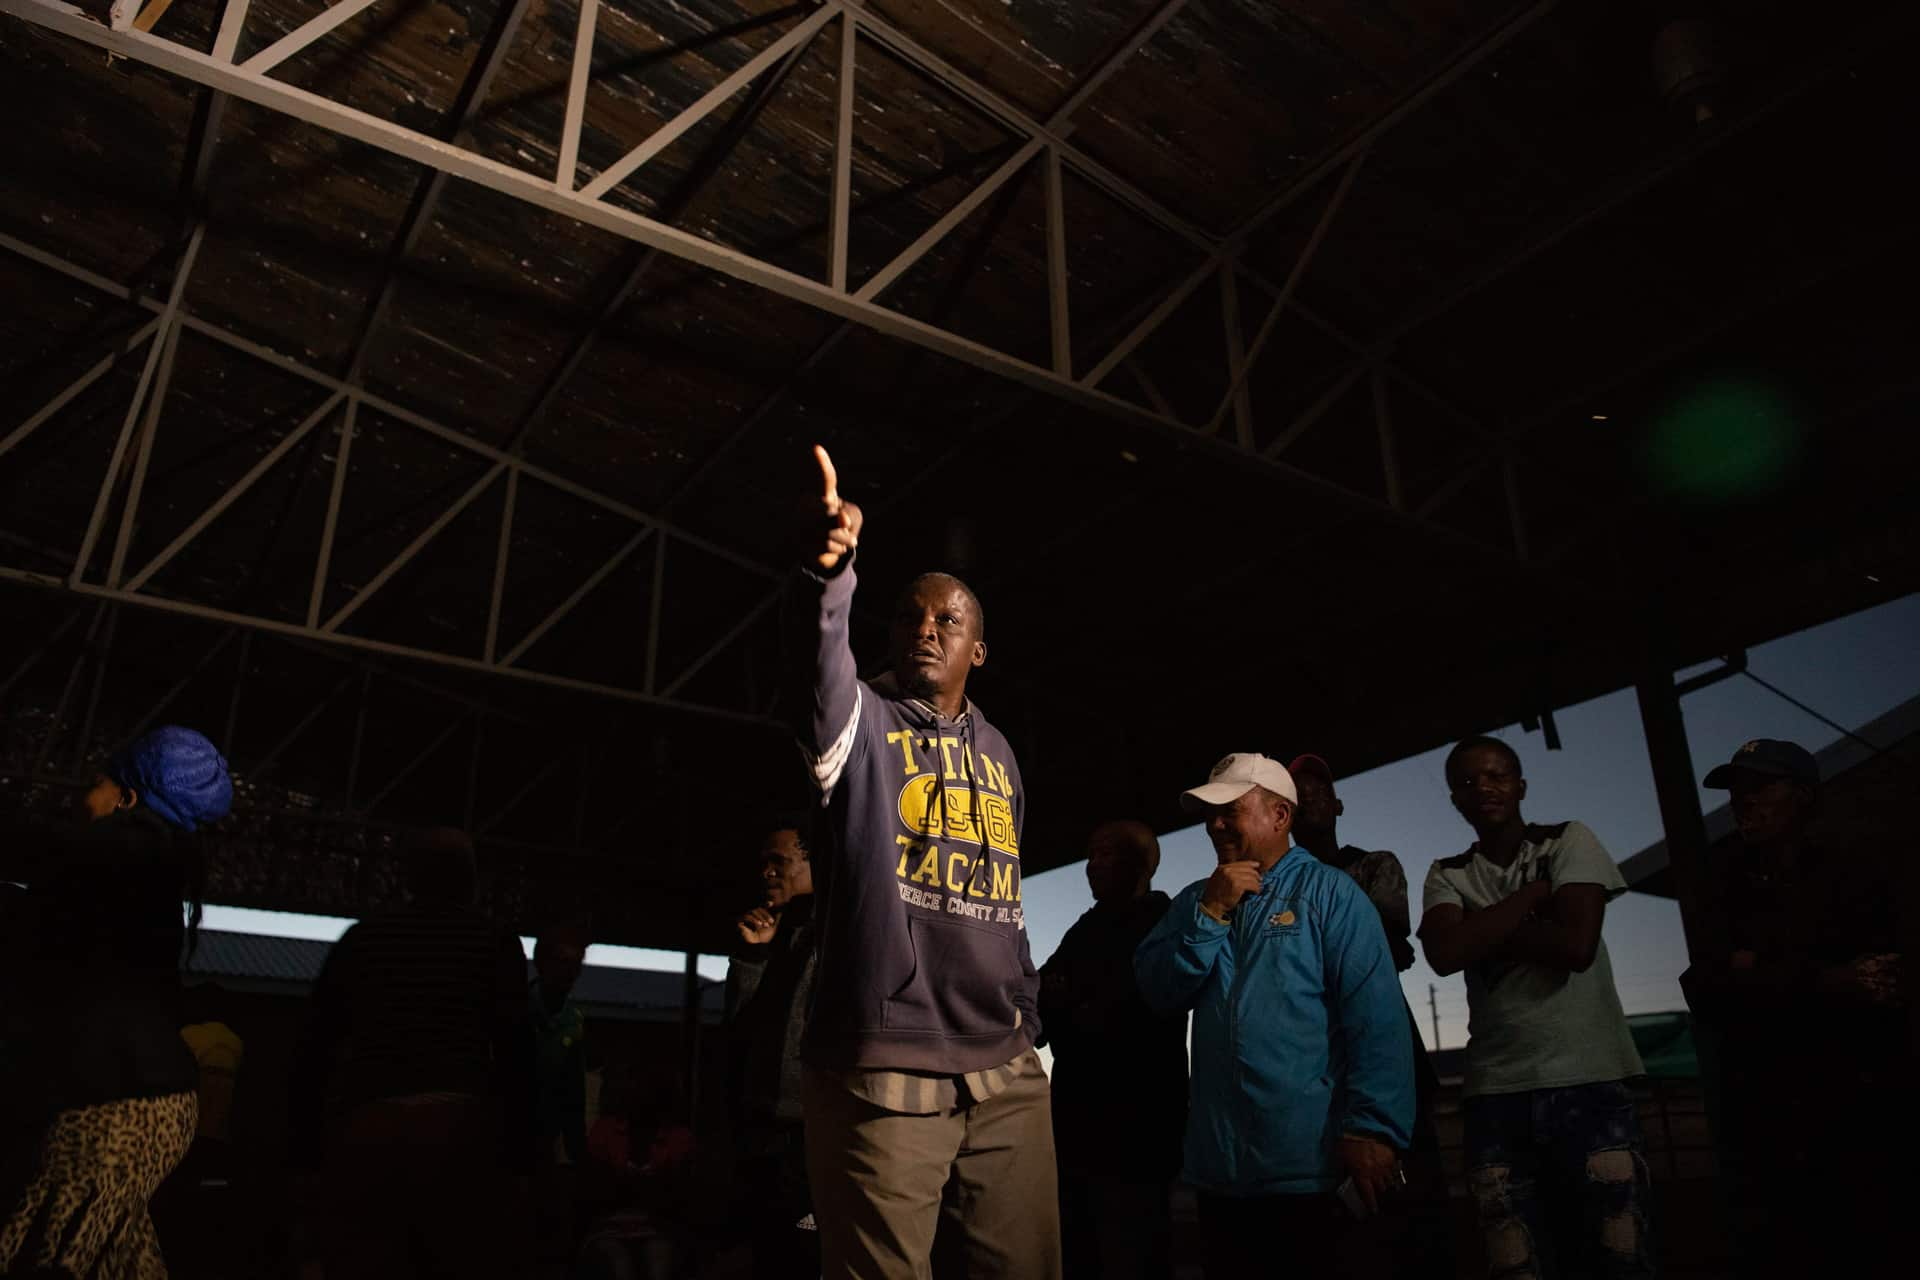 25 April 2019: Local resident Rawe Kakawu reacts in the moment to a statement from the ANC representative in the debate being aired live on X-K Fm.